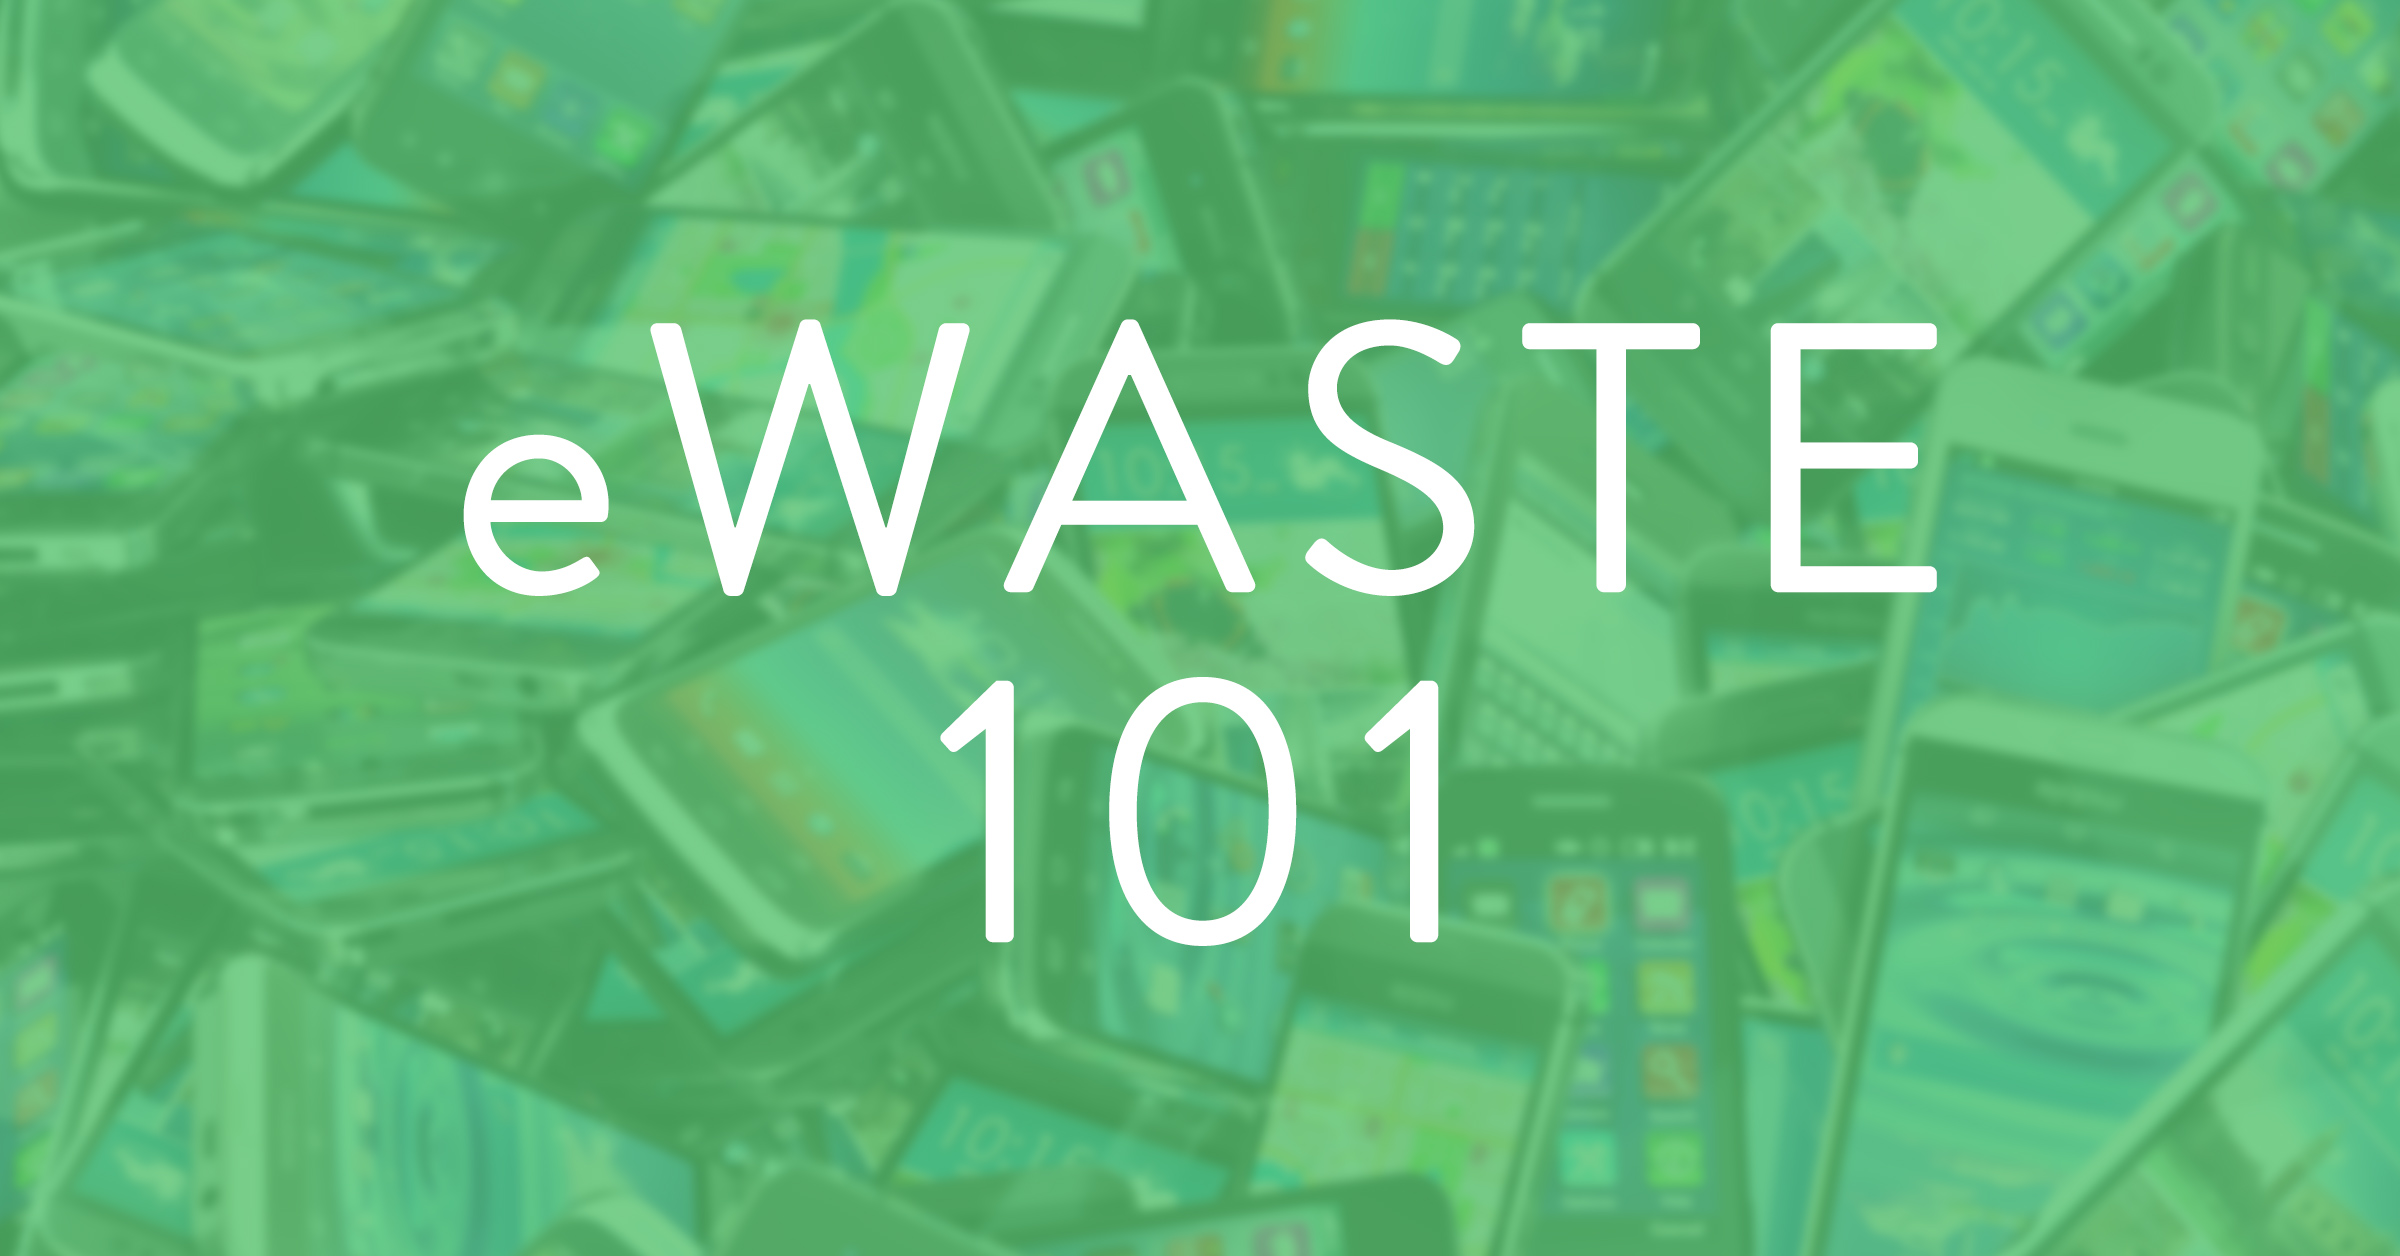 E-Waste 101: Where Do Our Old Phones End Up?